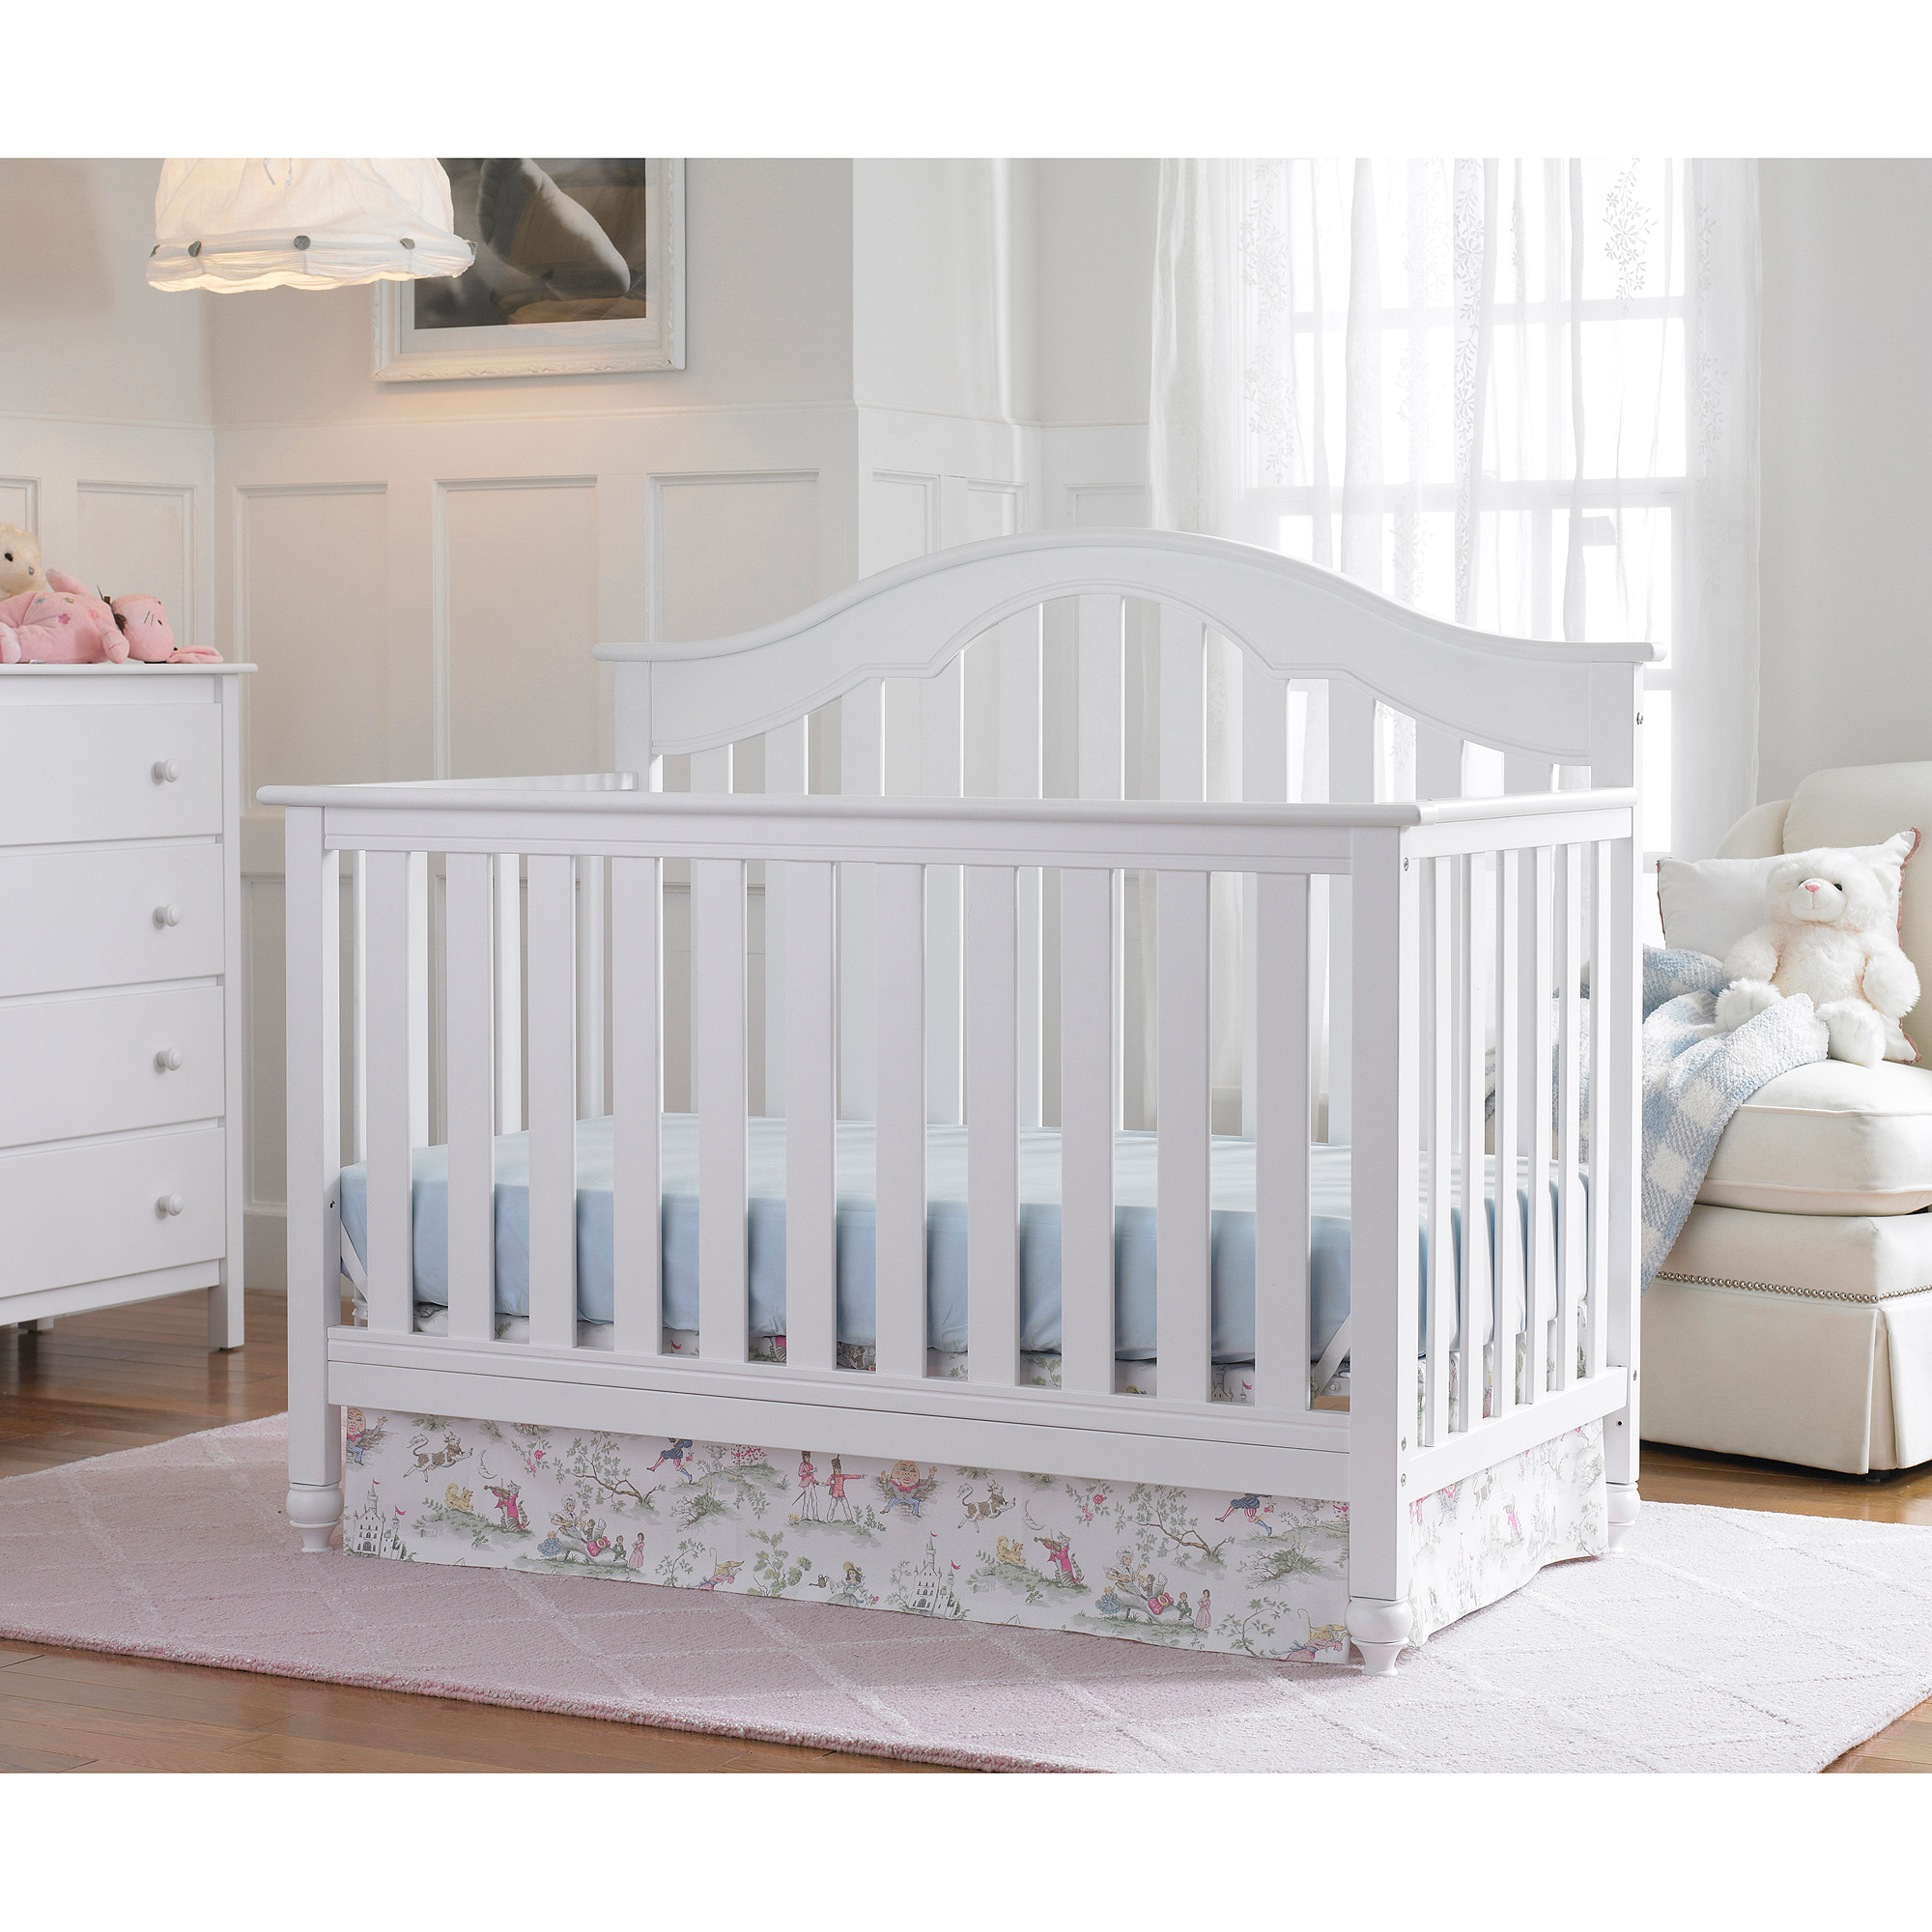 Fisher-Price Kingsport 4-in-1 Convertible Crib Collection, Snow White